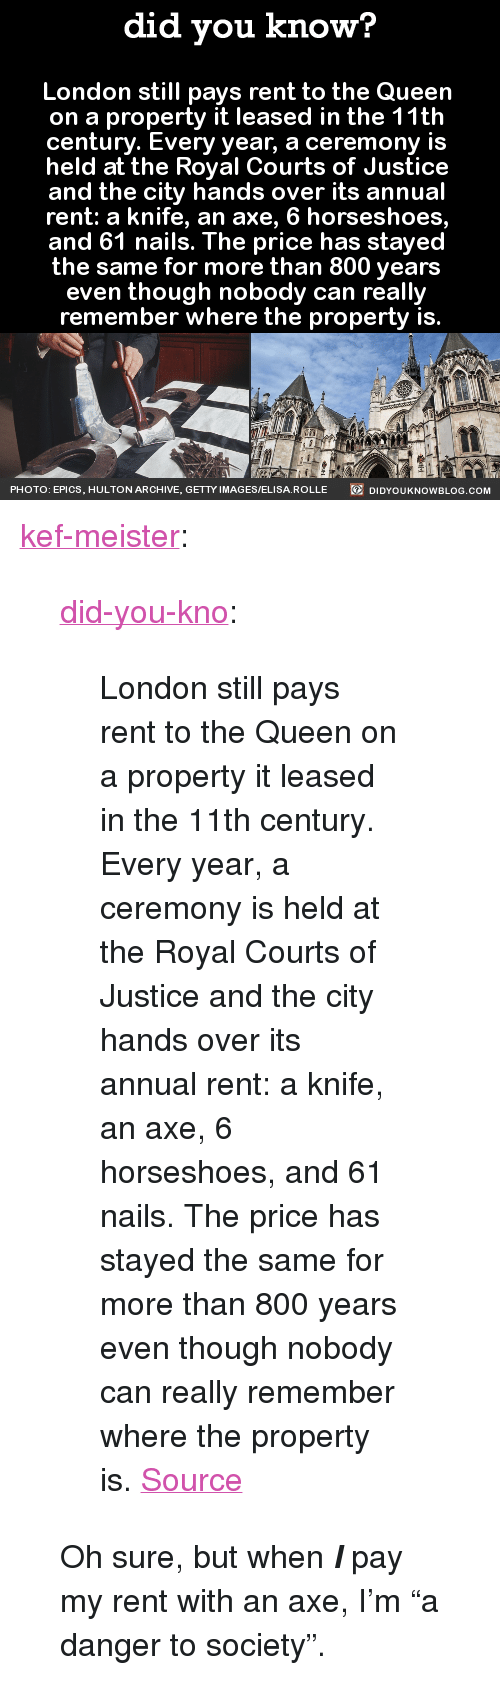 """Is Held: did you know?  London still pays rent to the Queen  on a property it leased in the 11th  century. Every year, a ceremony is  held at the Royal Courts of Justice  and the city hands over its annual  rent: a knife, an axe, 6 horseshoes,  and 61 nails. The price has stayed  the same for more than 800 years  even though nobody can really  remember where the property is.  PHOTO : EPICS, HULTON ARCHIVE, GETTYIMAGES/ELISA.ROLLE  92  DIDYOUKNOWBLOG.COM <p><a href=""""http://kef-meister.tumblr.com/post/152511822077"""" class=""""tumblr_blog"""">kef-meister</a>:</p>  <blockquote><p><a class=""""tumblr_blog"""" href=""""http://did-you-kno.tumblr.com/post/152470387303"""">did-you-kno</a>:</p> <blockquote> <p>London still pays rent to the Queen  on a property it leased in the 11th  century. Every year, a ceremony is  held at the Royal Courts of Justice  and the city hands over its annual  rent: a knife, an axe, 6 horseshoes,  and 61 nails. The price has stayed  the same for more than 800 years  even though nobody can really  remember where the property is.  <a href=""""http://www.atlasobscura.com/articles/london-is-still-paying-rent-to-the-queen-on-a-property-leased-in-1211"""">Source</a></p> </blockquote>  <p>Oh sure, but when <b><i>I</i></b> pay my rent with an axe, I'm """"a danger to society"""".<br/></p></blockquote>"""